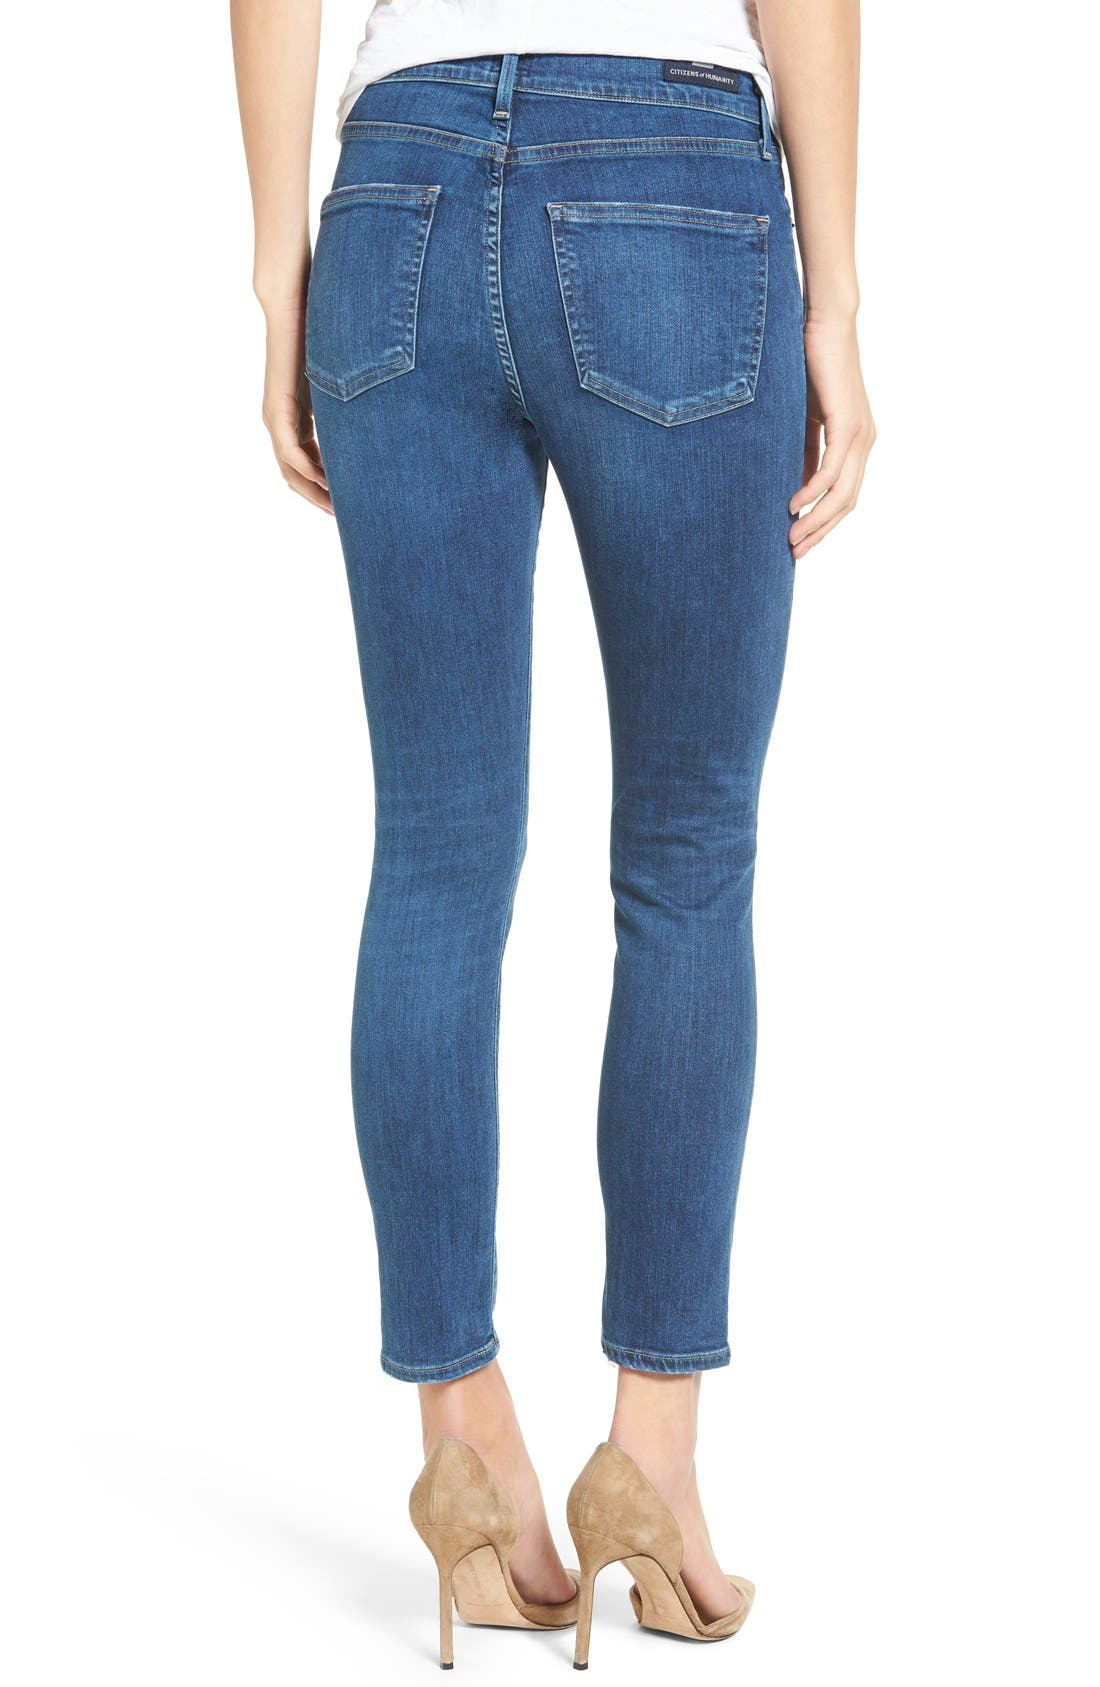 Rocket High Waist Crop Skinny Jeans,                             Alternate thumbnail 3, color,                             430